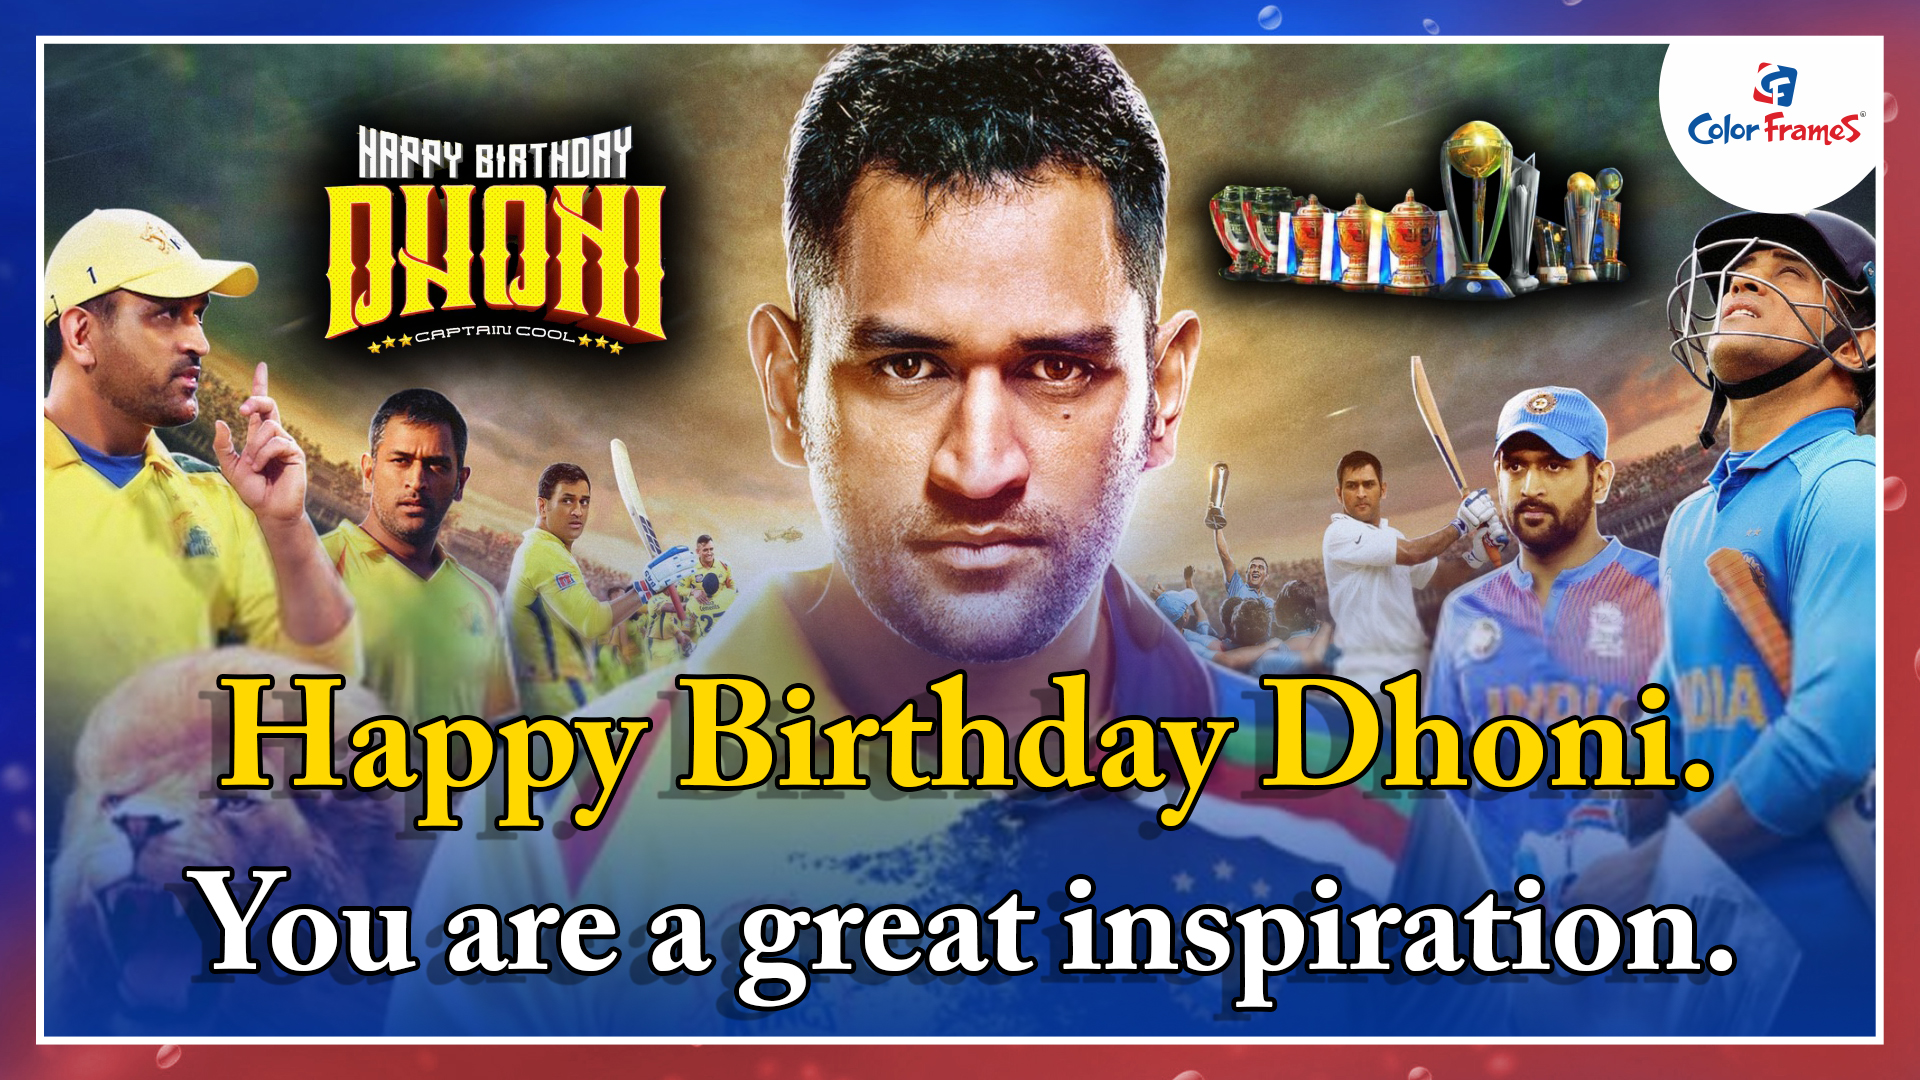 Happy Birthday Dhoni. You are a great inspiration.